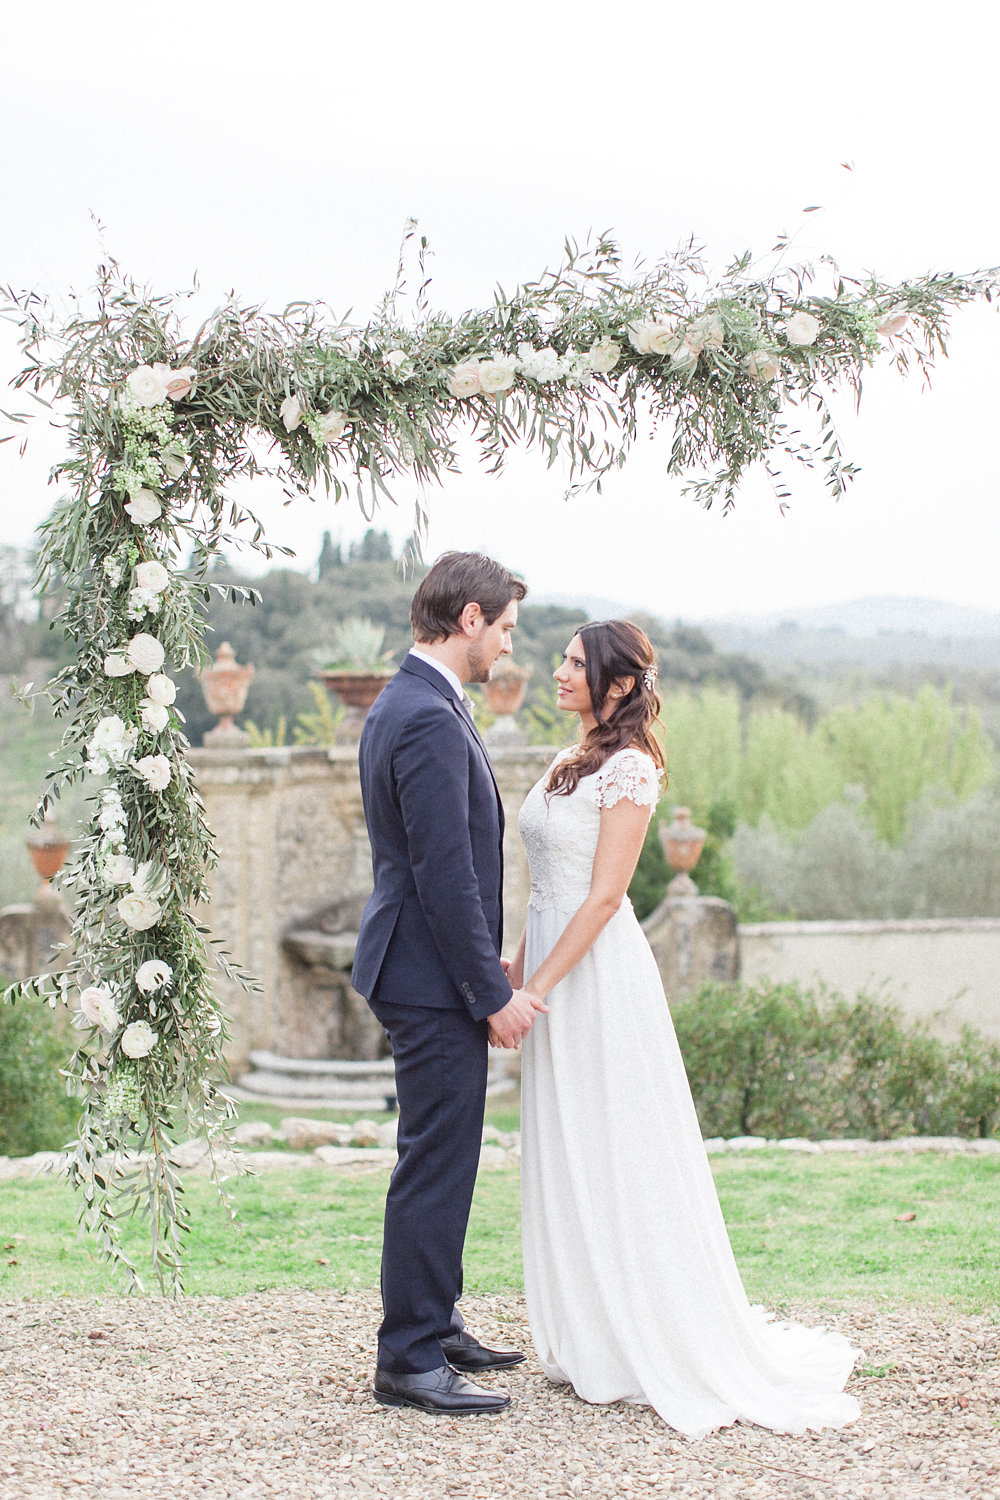 Tuscany Wedding Photographer Roberta Facchini 121